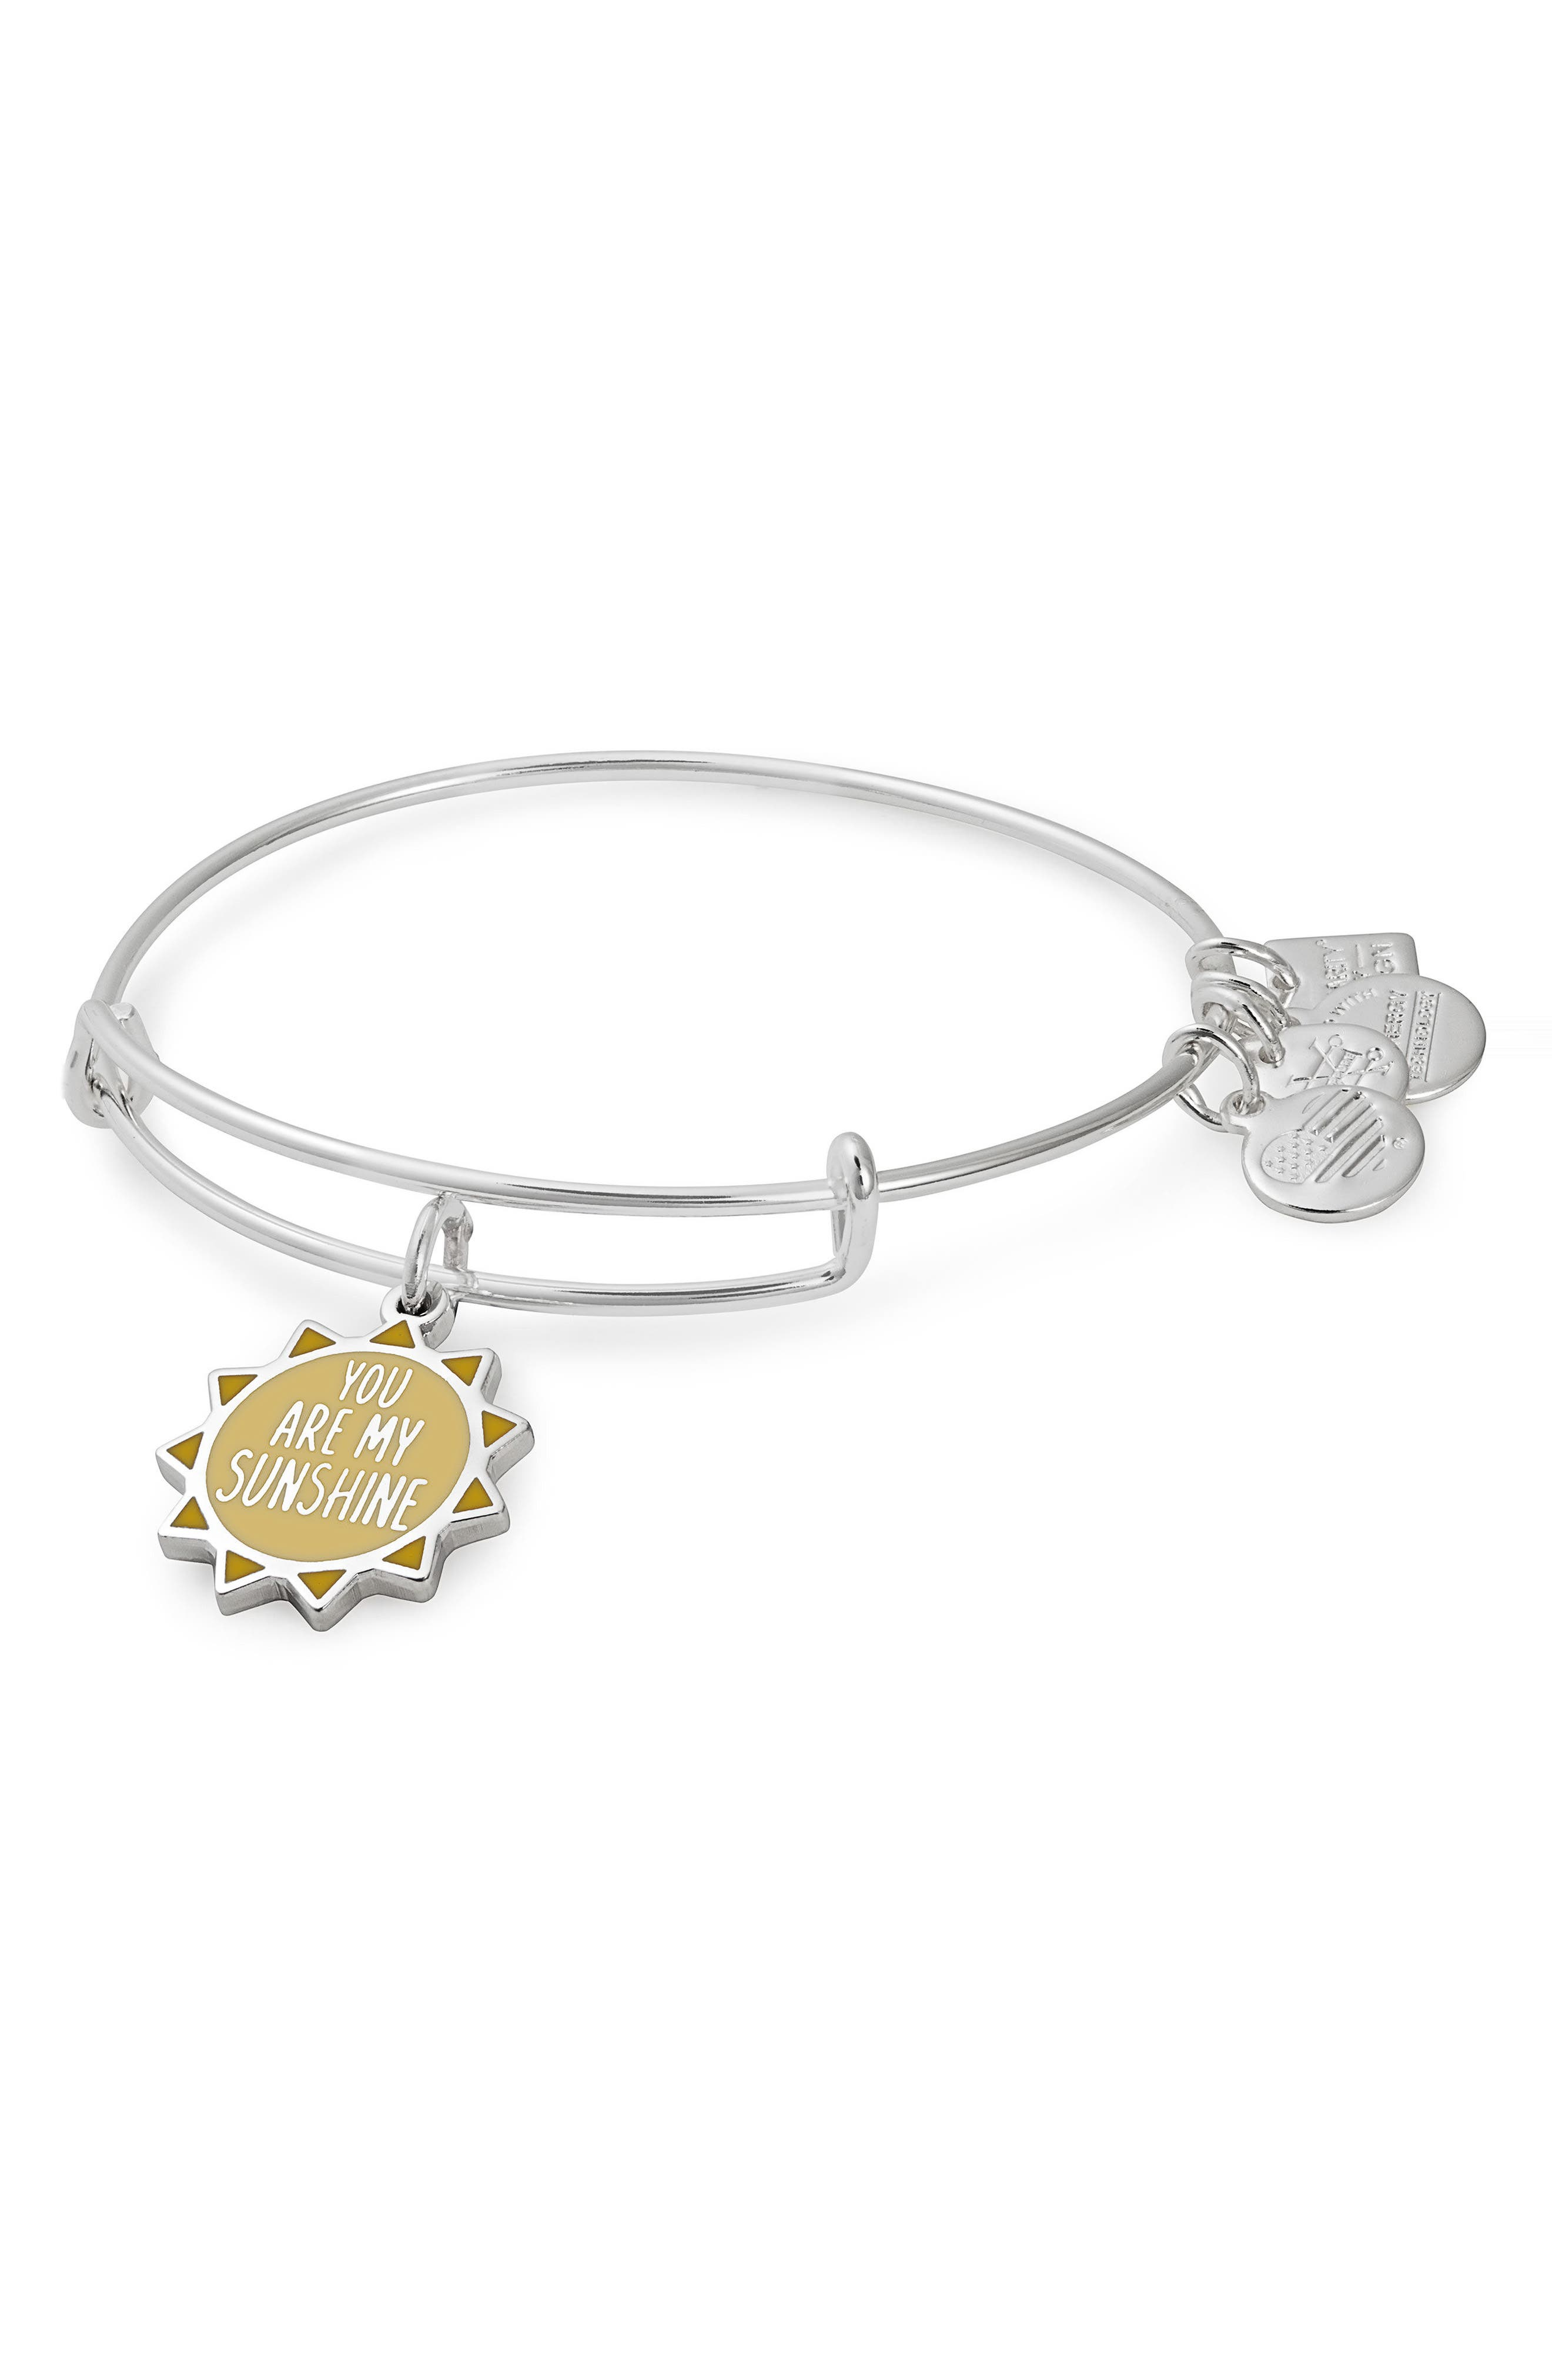 Charity by Design You Are My Sunshine Charm Bracelet,                             Main thumbnail 1, color,                             SILVER